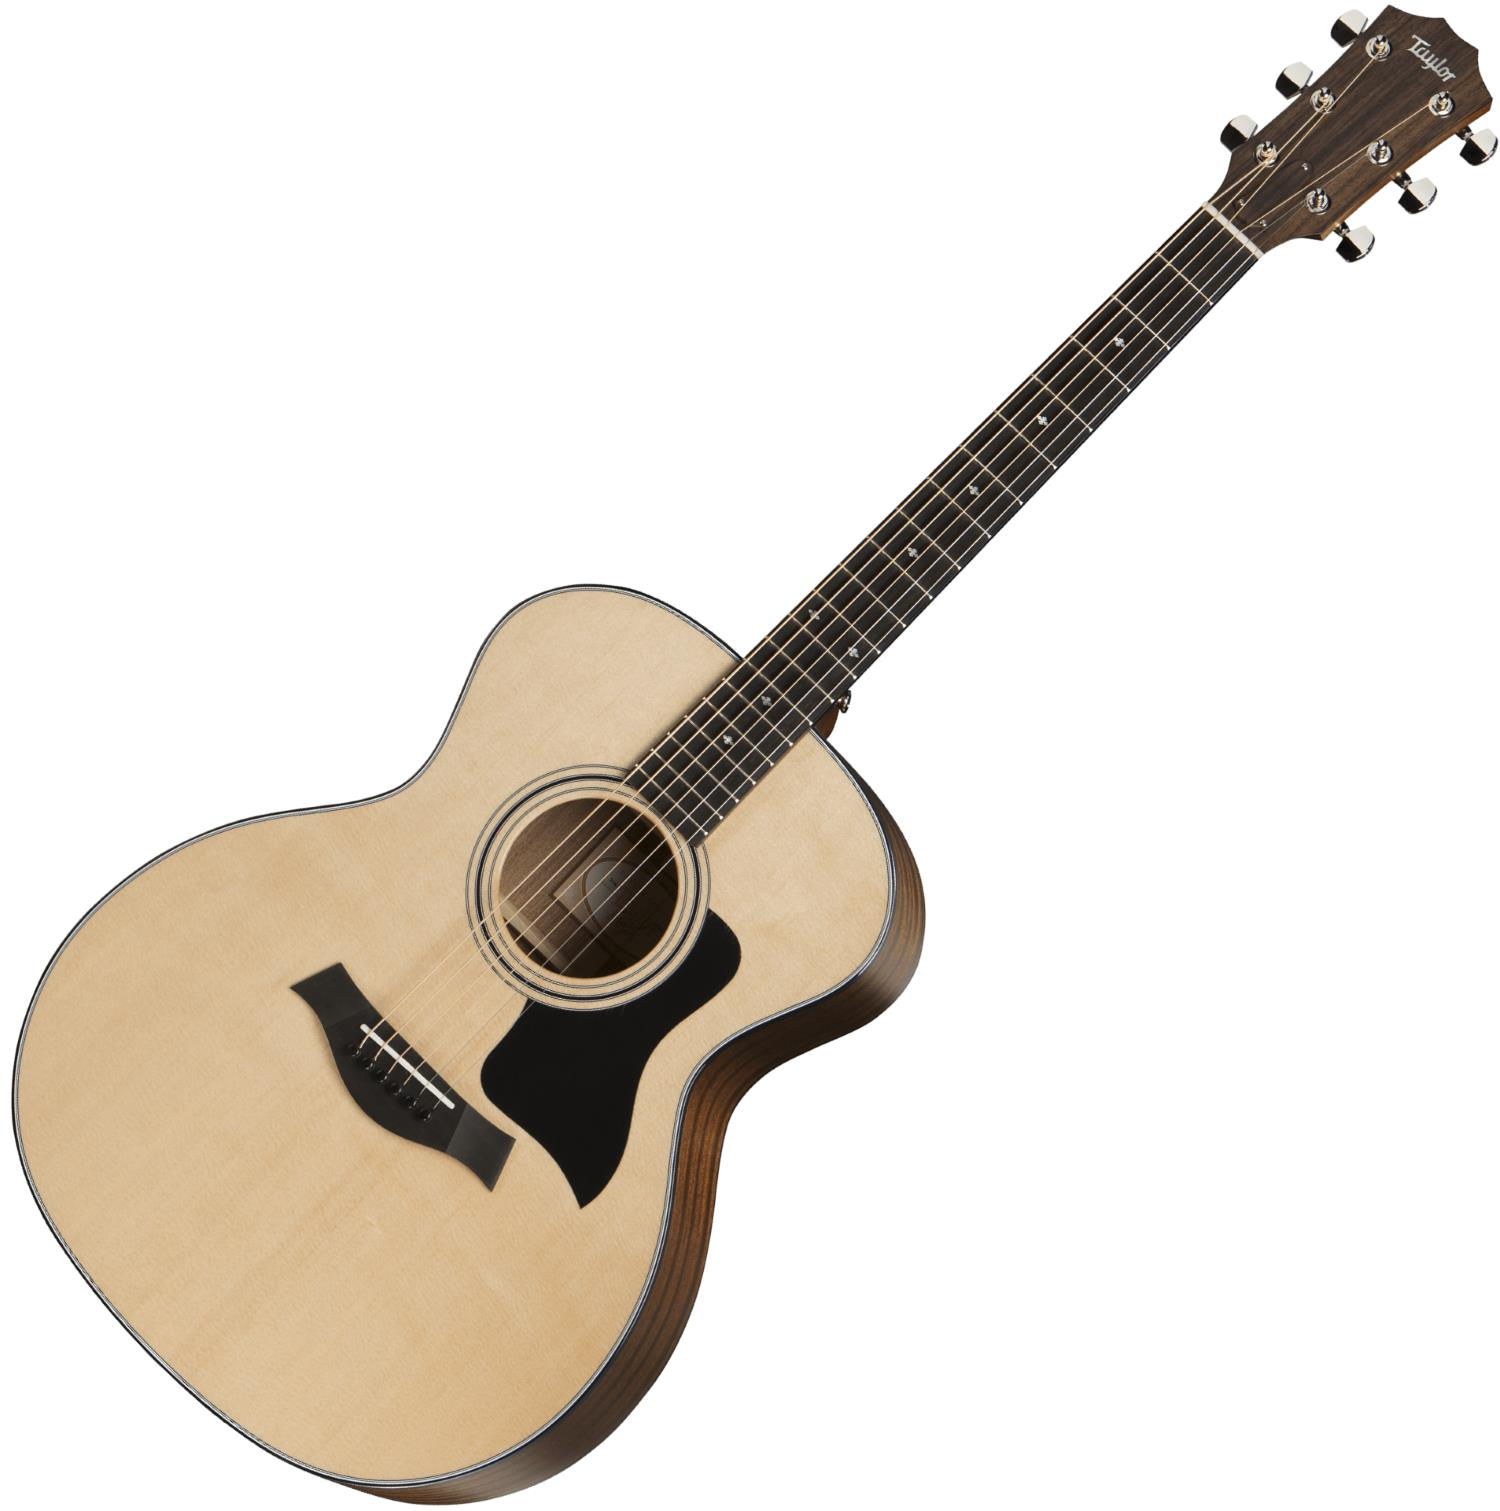 Acoustic guitar buying guide | sweetwater.